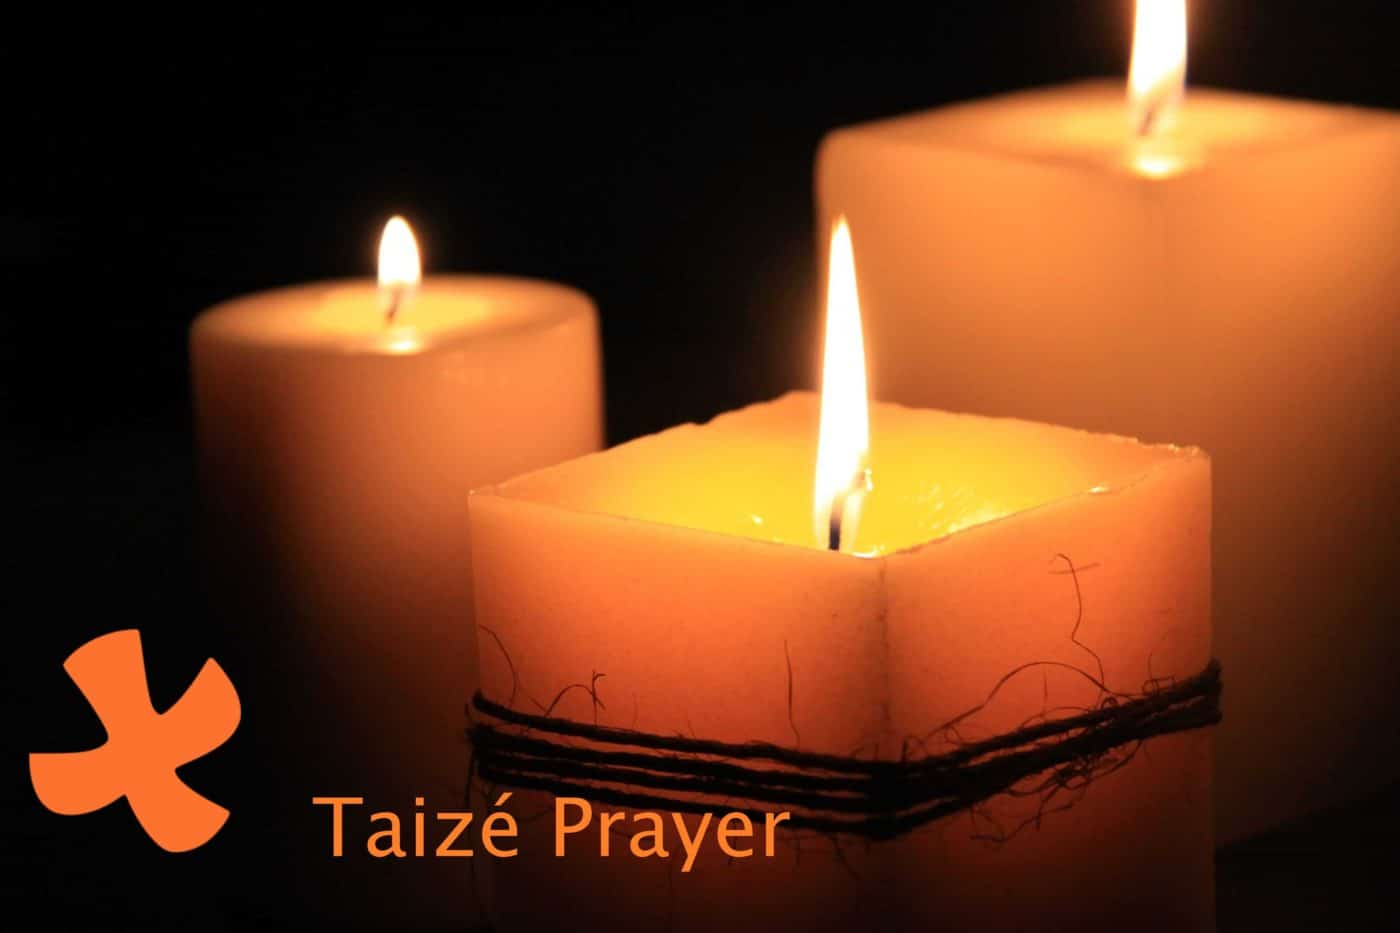 Taizé Prayer Candles